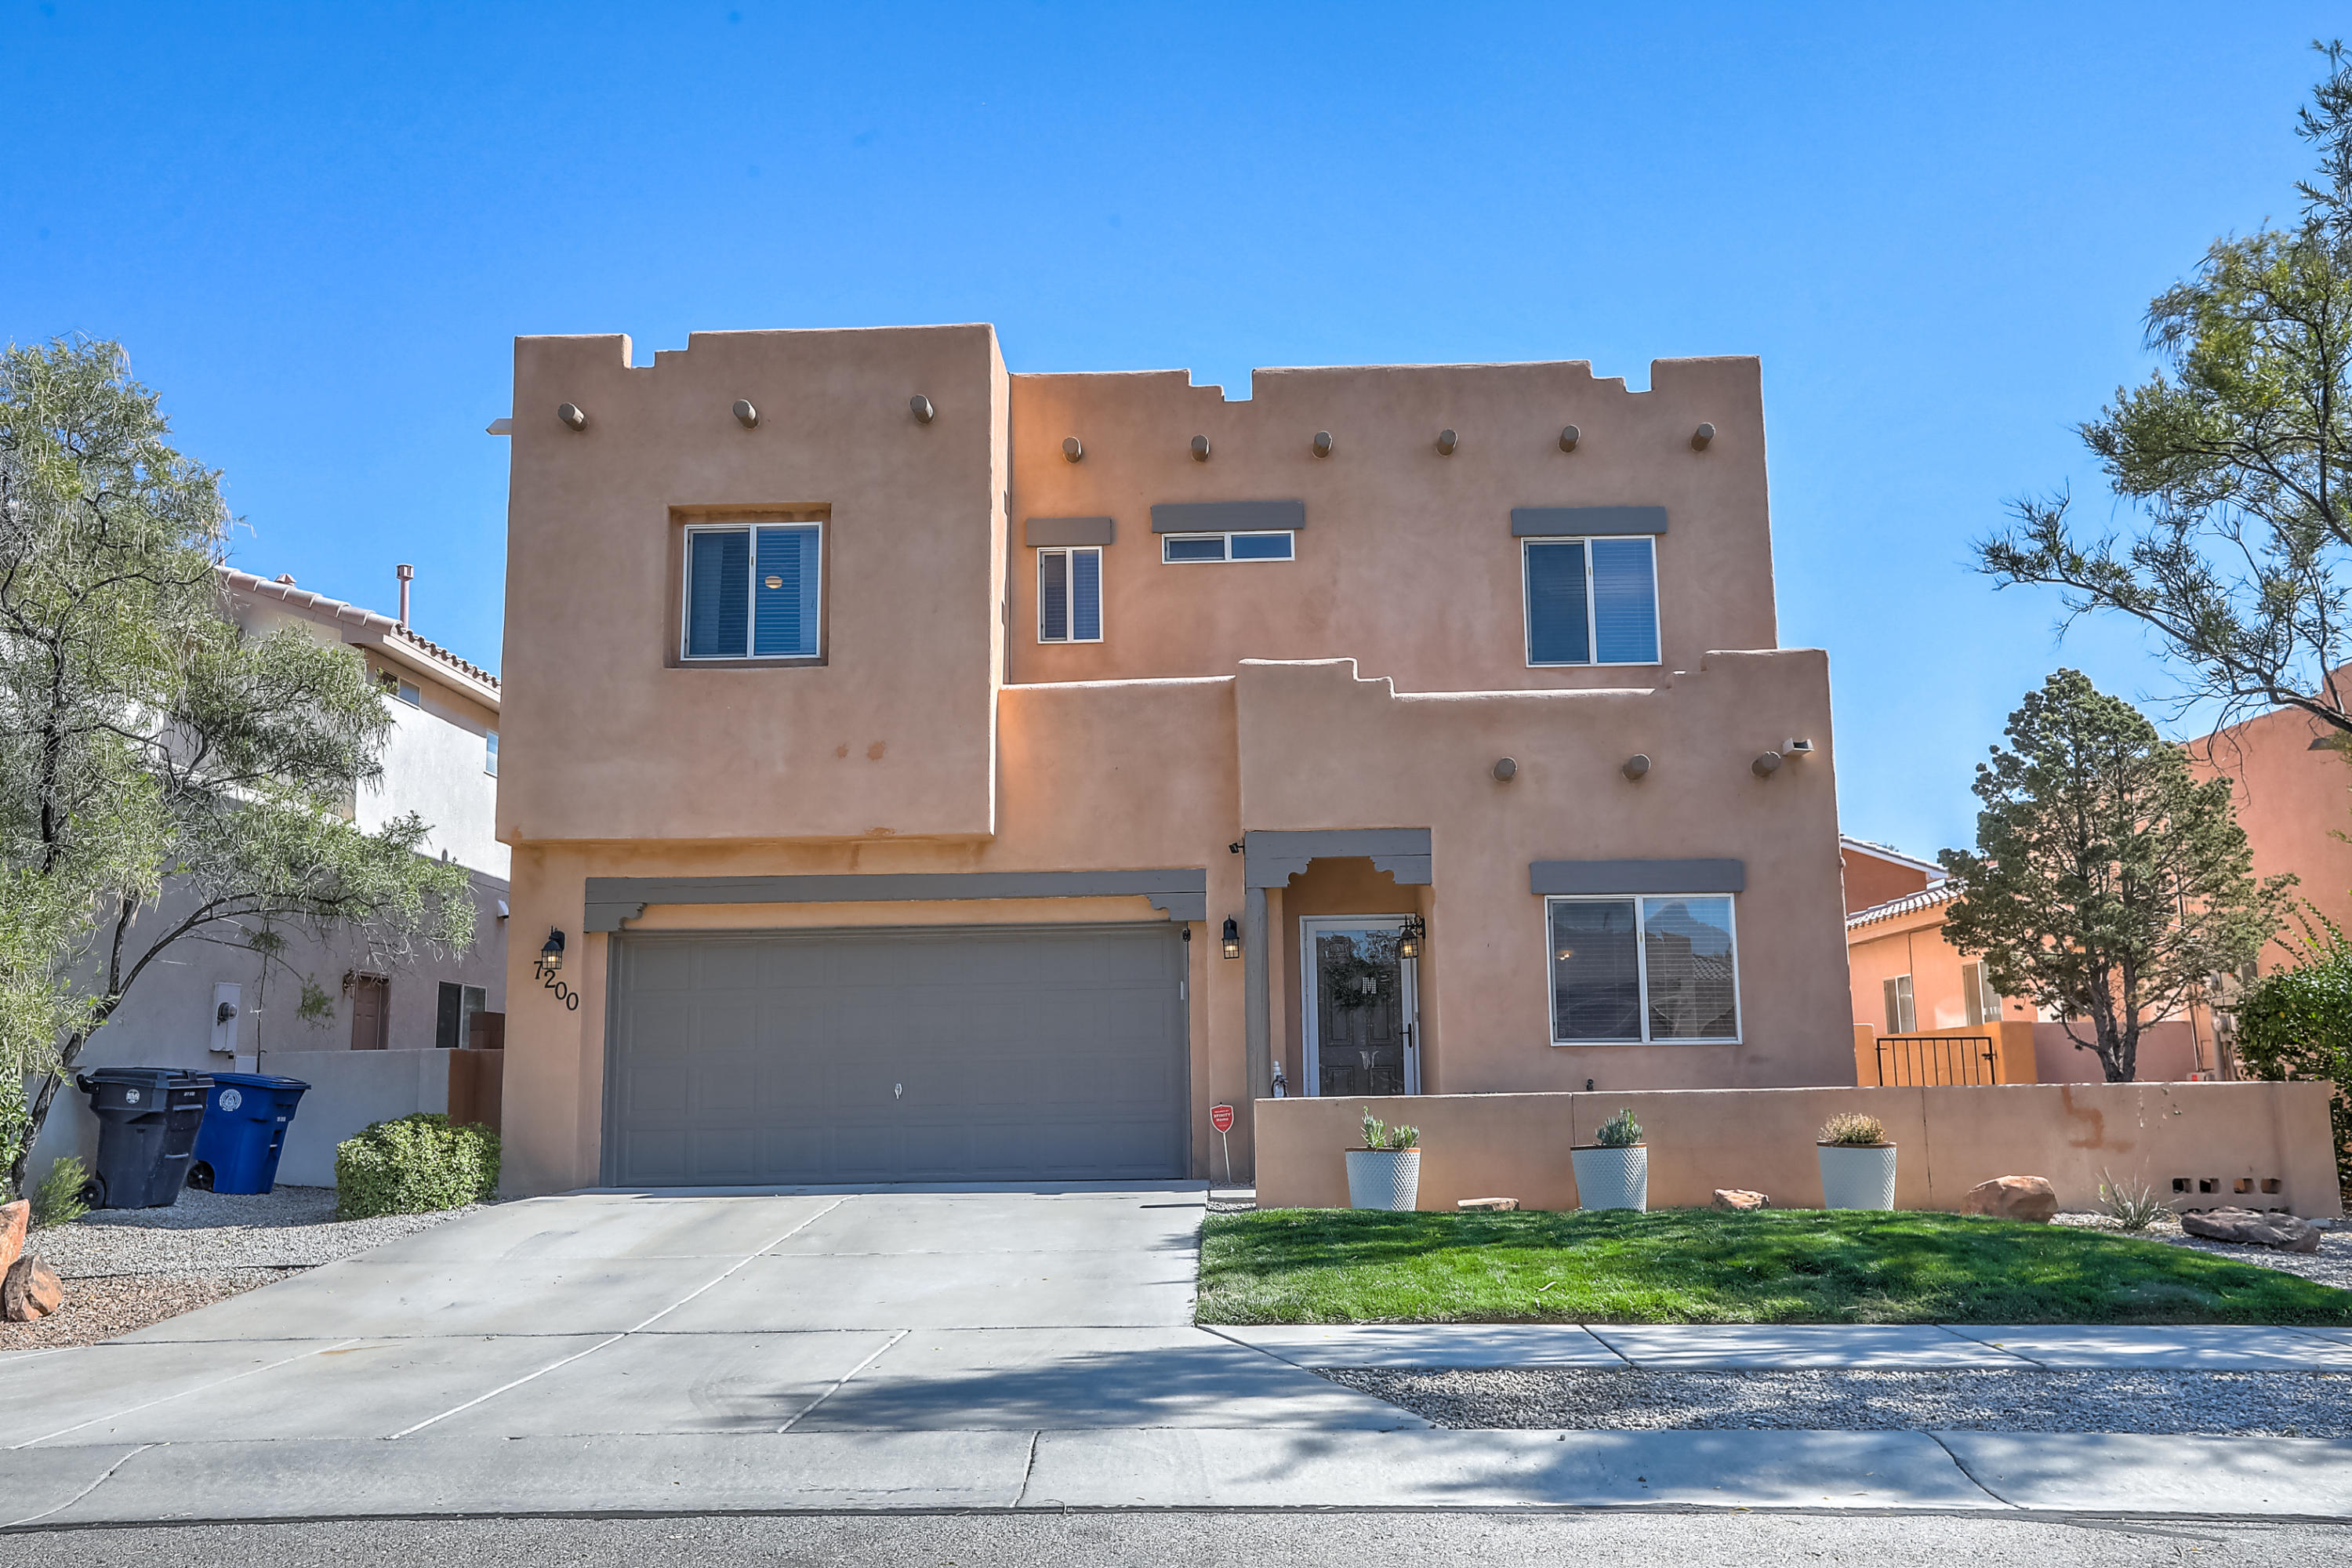 This stunning home is nestled in a cul-de-sac of Vista Del Norte.  The lovely bright floor plan has all bedrooms upstairs along with a great loft area.  The kitchen is open to the living area and has an island, gas stove, updated backsplash, large pantry, and more. There is a nice front entry area also that would be great for a formal dining space or office area.  The master bedroom is very spacious and also has a walk out balcony with great views of the Sandia Mountains.  The master bathroom has a walk in shower, garden tub, double sinks, and huge walk in closet.  In the backyard you'll enjoy a pergola covered patio, grass, and a shed.  This neighborhood has lots of park areas to enjoy also!